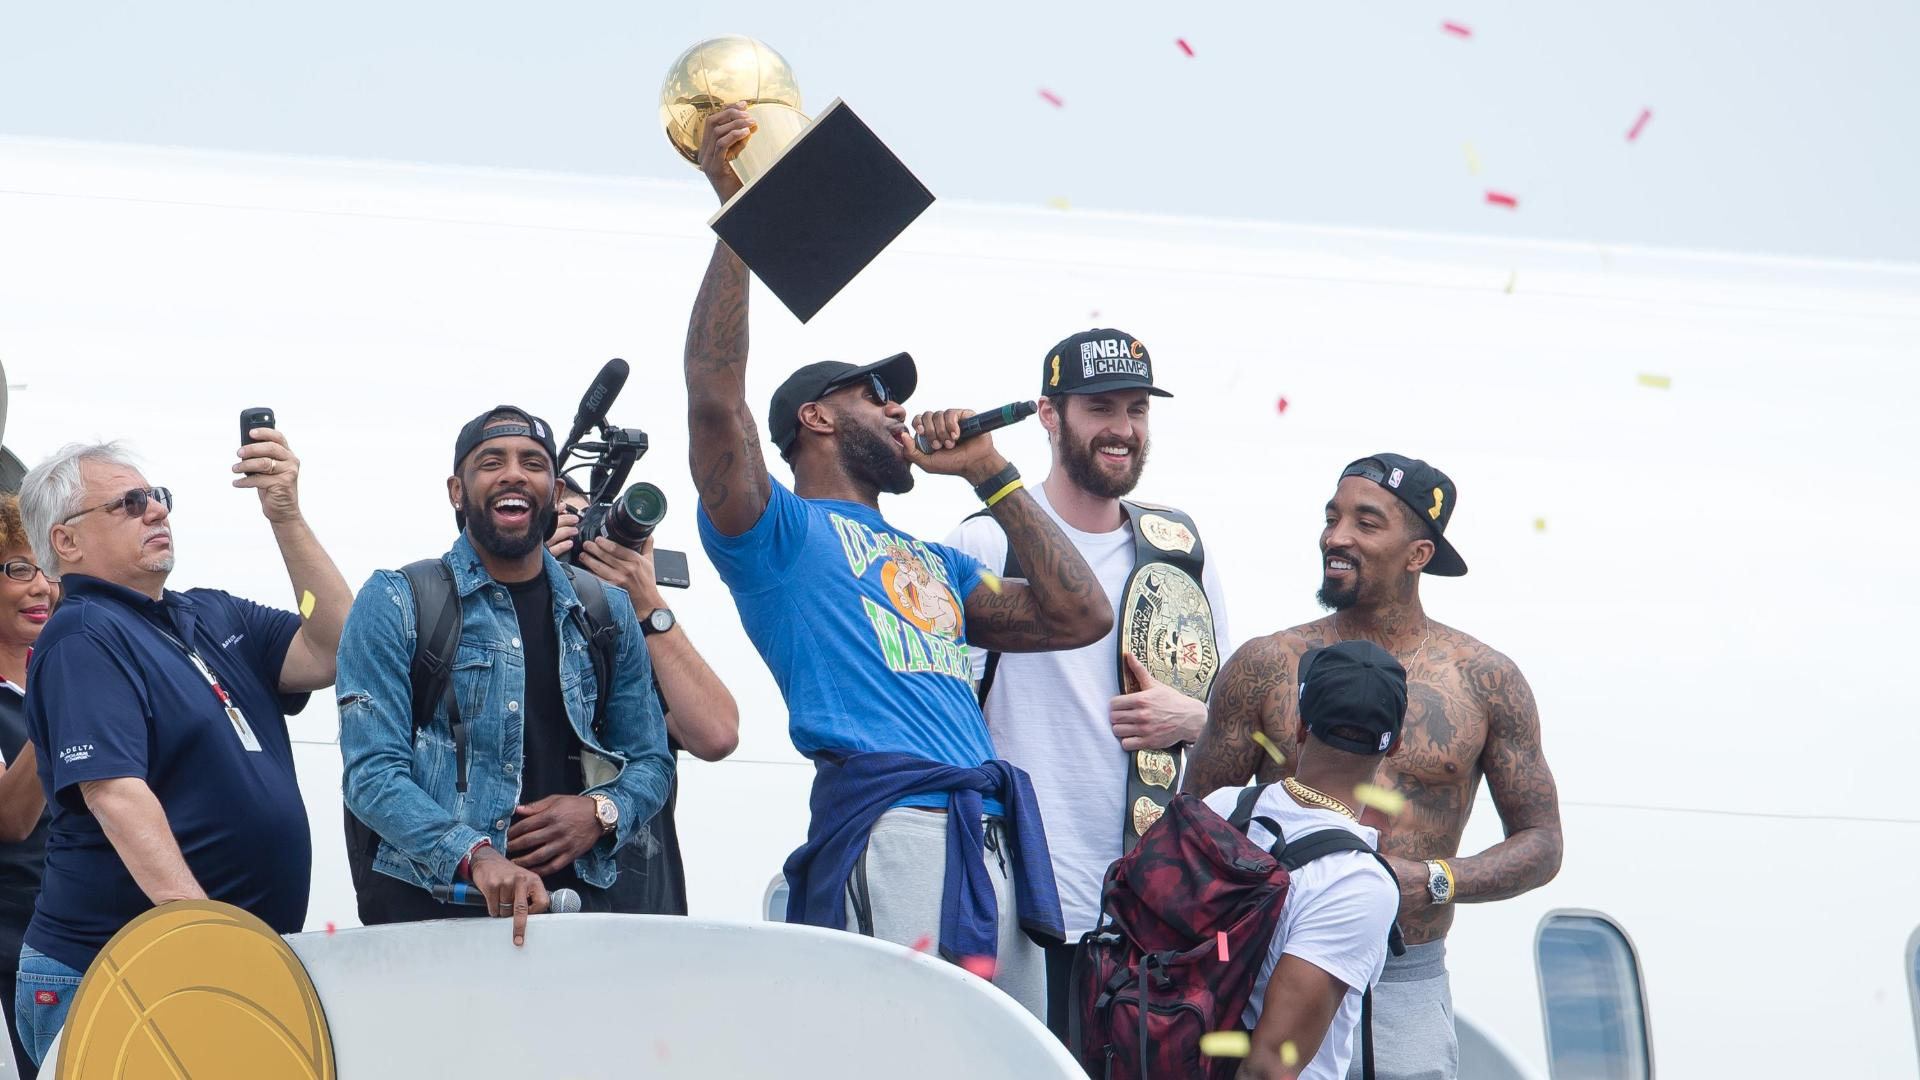 http://a.espncdn.com/media/motion/2016/0620/dm_160620_LeBron_arrives_off_plane1156/dm_160620_LeBron_arrives_off_plane1156.jpg